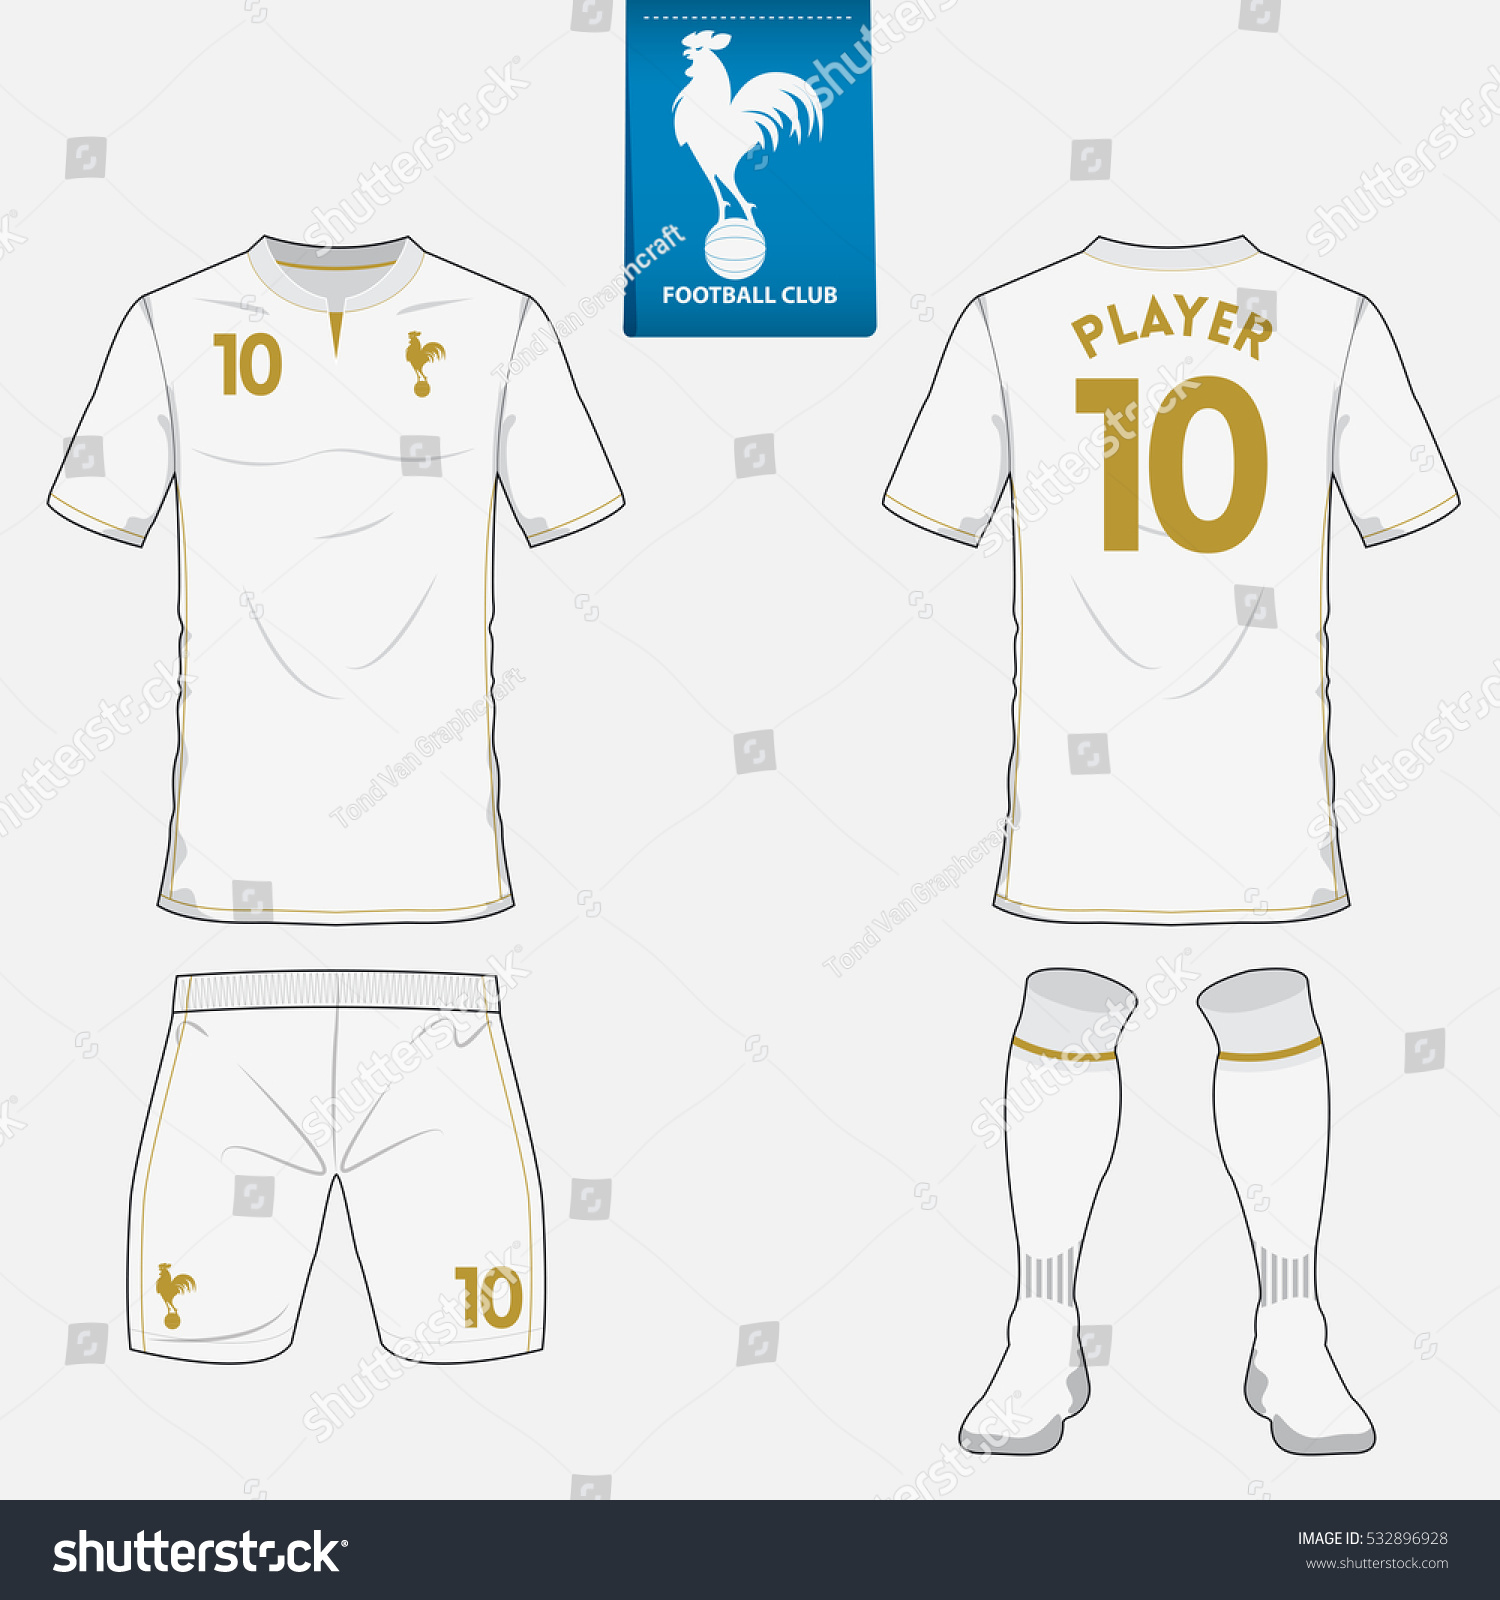 Set of soccer jersey or football kit template for football club. Flat  football logo on 2f6aee1b0